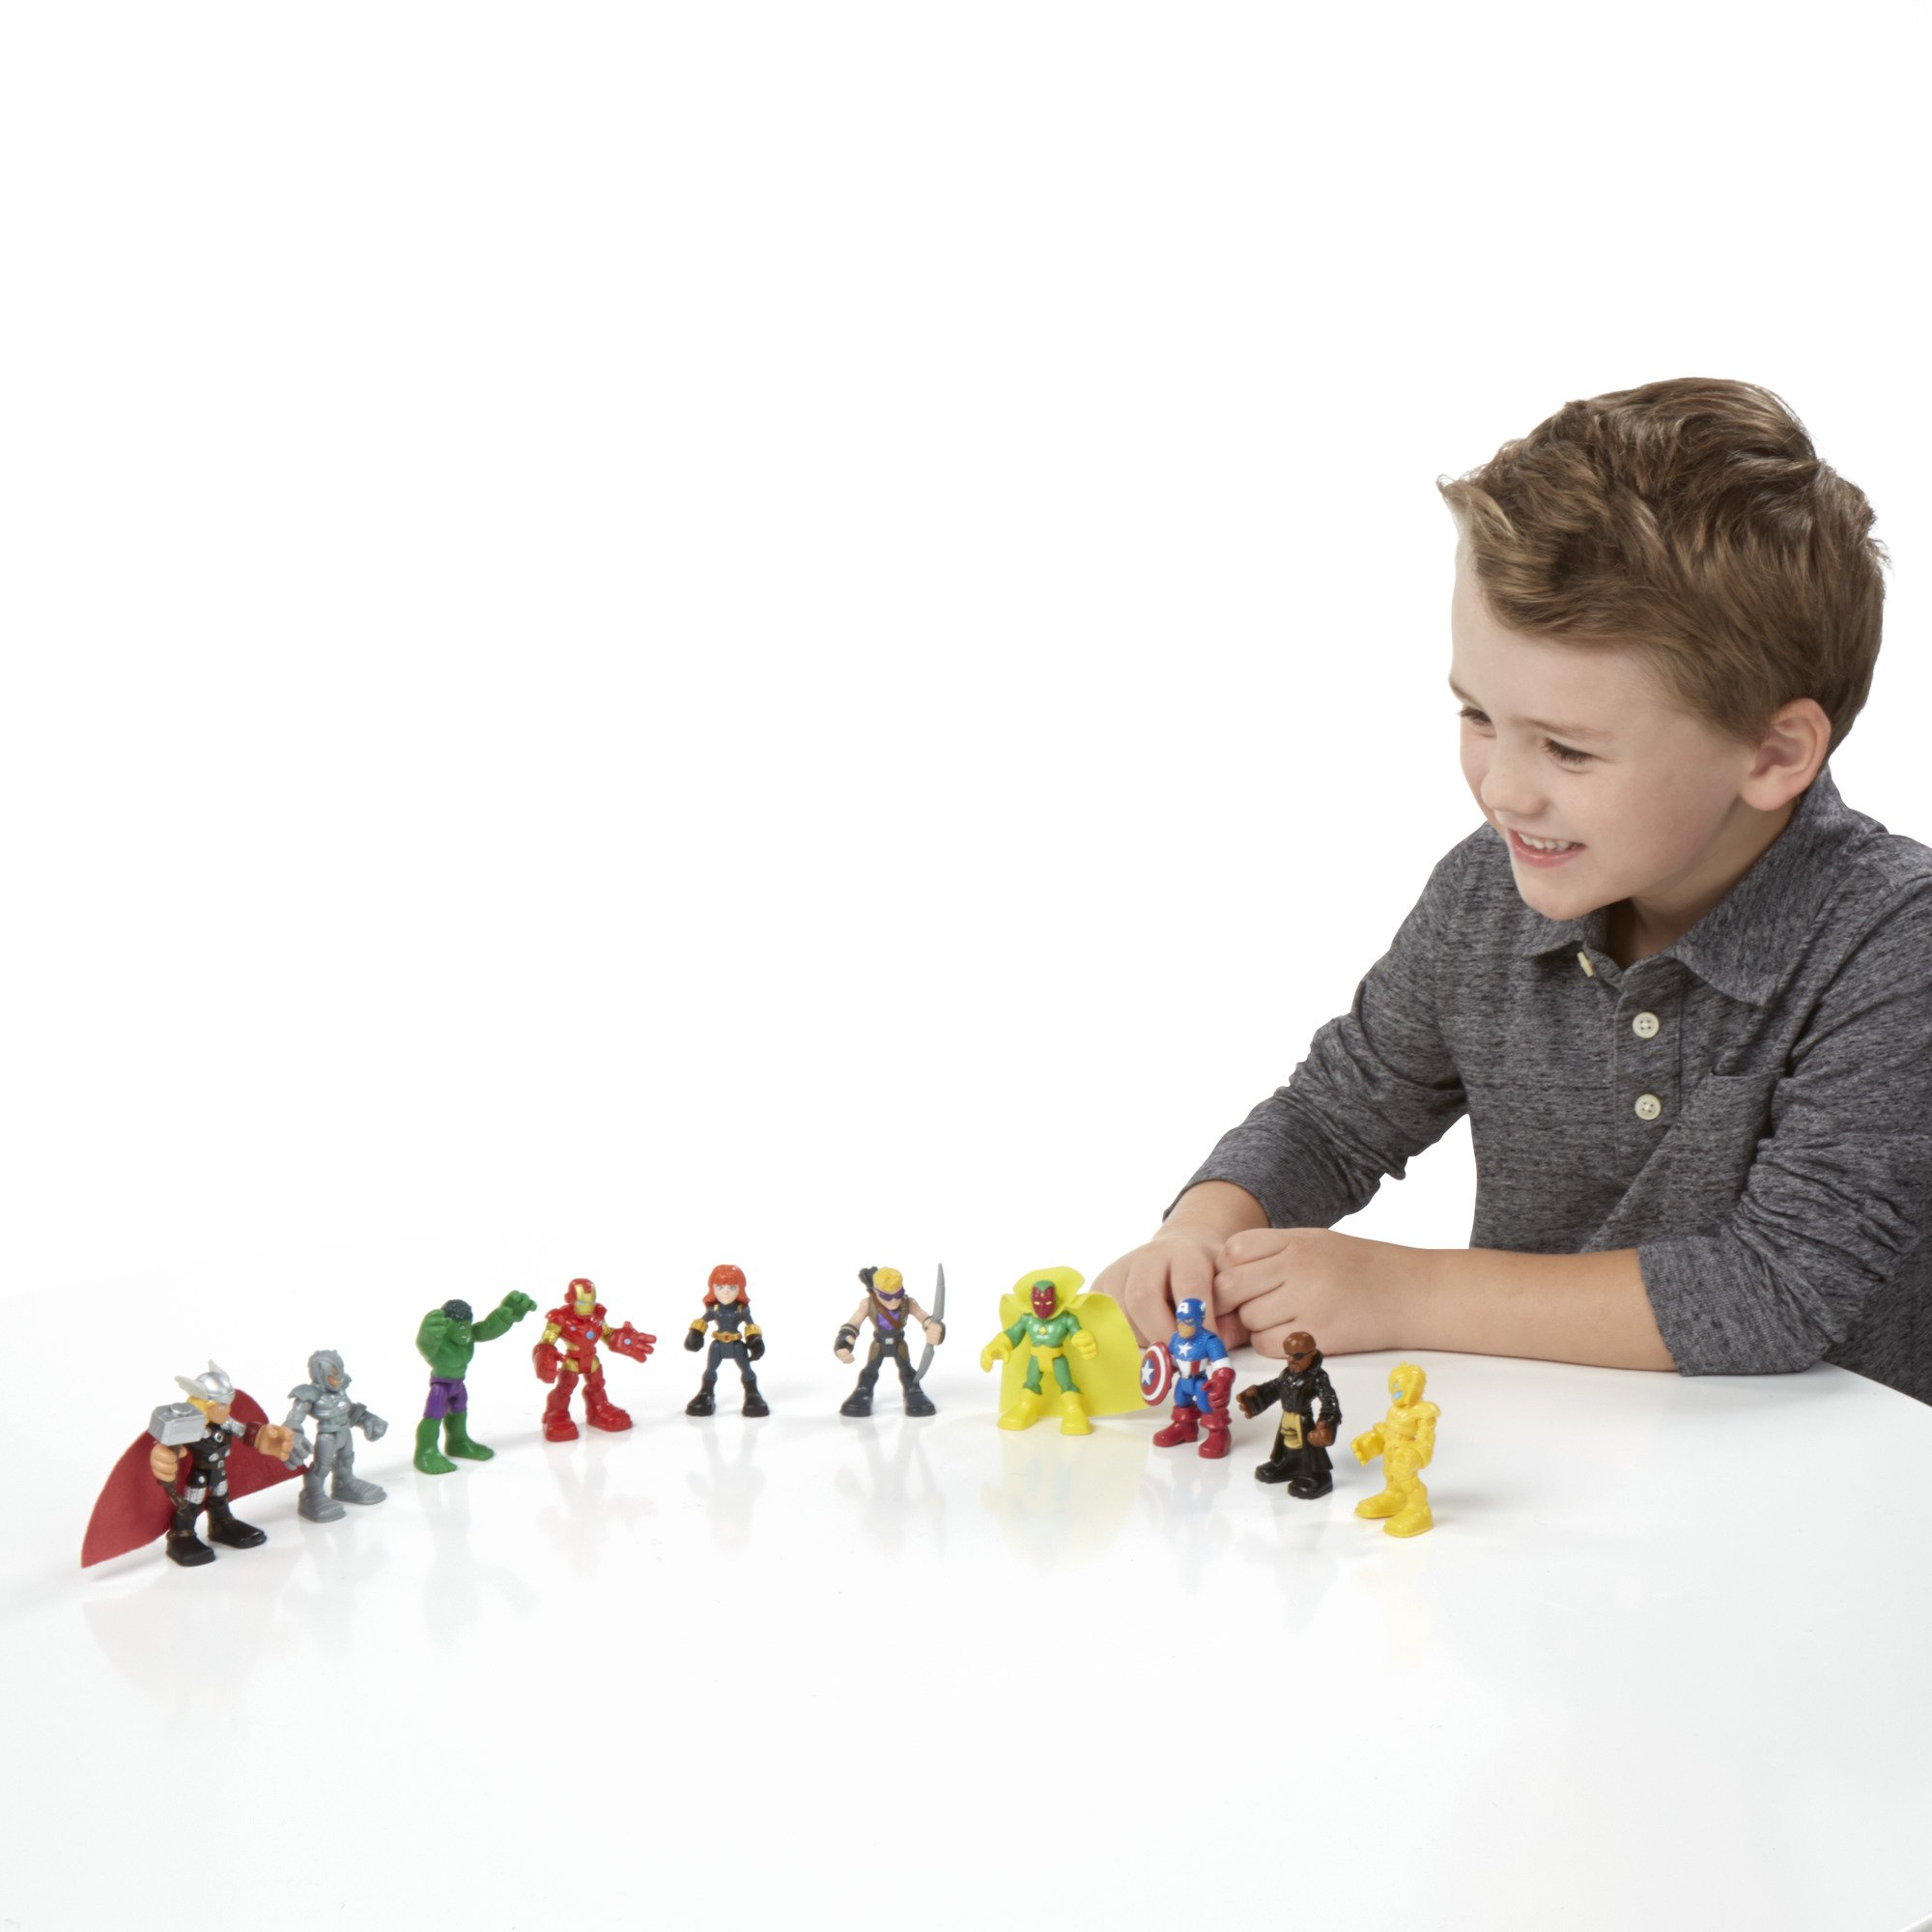 Playskool Heroes Marvel Super Hero Adventures Ultimate Super Hero Set, 10 Figures, Ages 3-7 (Amazon Exclusive)